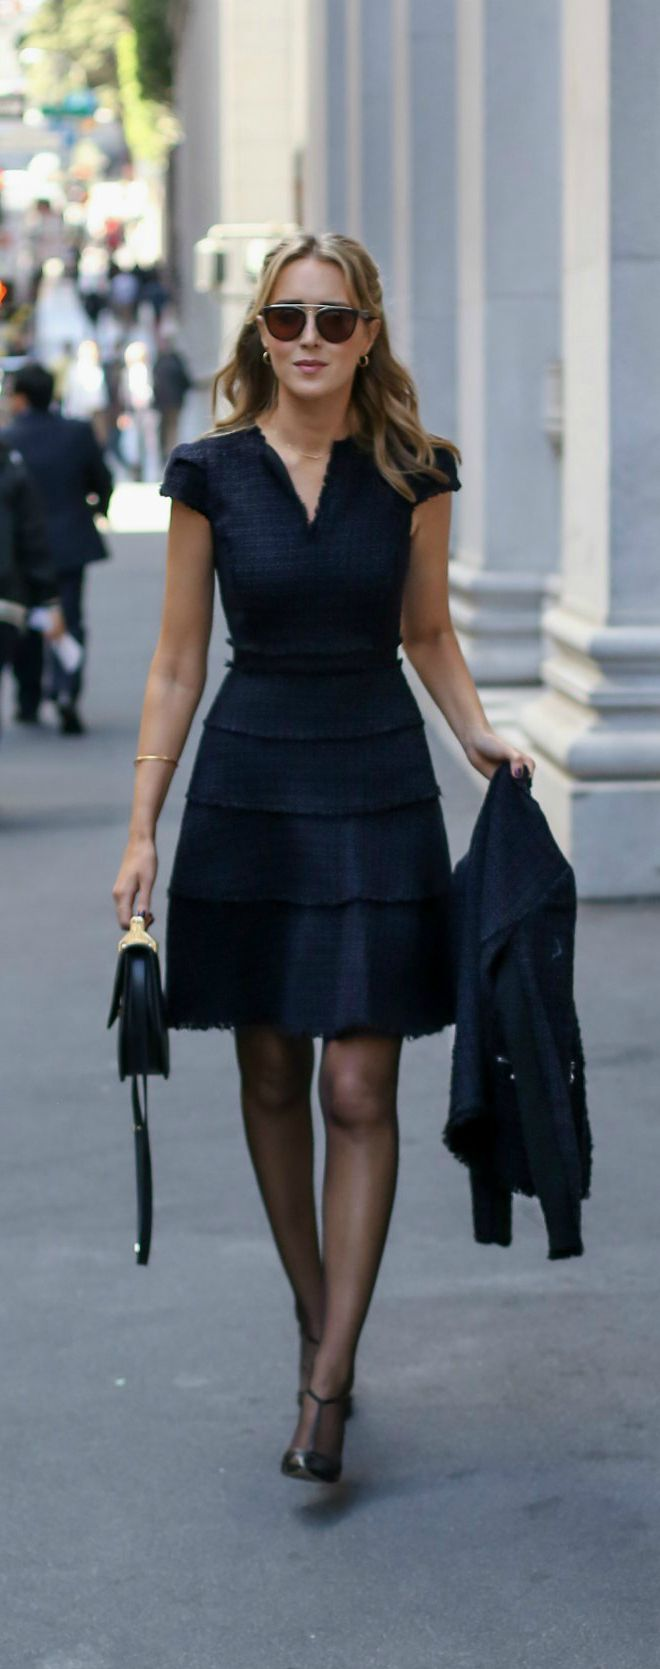 #30DRESSESin30DAYS - Day 4 Business Conference - Black and navy tweed fit and flare short sleeve dress with coordinating suit jacket perfect for fall and winter business formal work events {rebecca taylor, sjp collection, m2malletier}